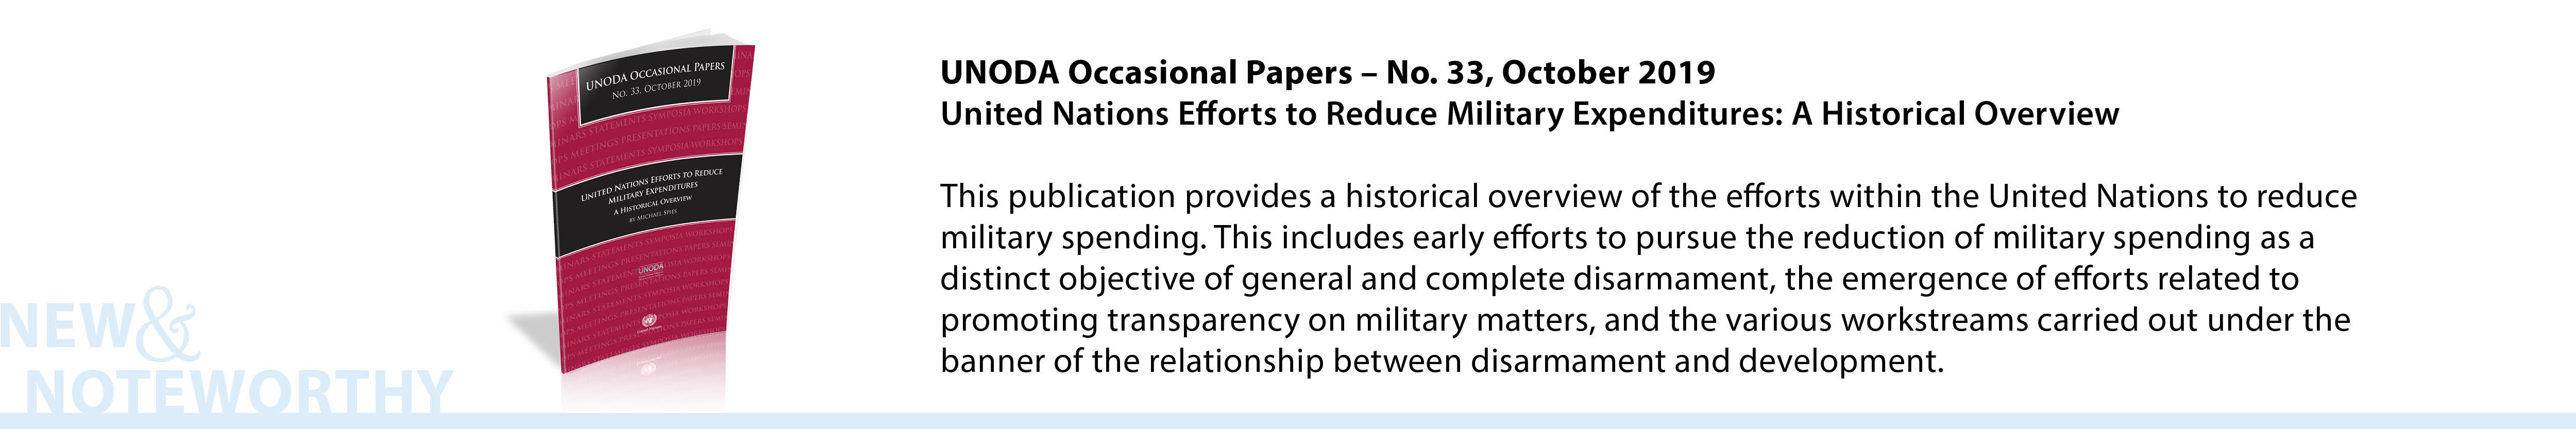 UNODA Occasional Papers – No. 33, October 2019: United Nations Efforts to Reduce Military Expenditures: A Historical Overview - This publication provides a historical overview of the efforts within the United Nations to reduce military spending. This includes early efforts to pursue the reduction of military spending as a distinct objective of general and complete disarmament, the emergence of efforts related to promoting transparency on military matters, and the various workstreams carried out under the banner of the relationship between disarmament and development.